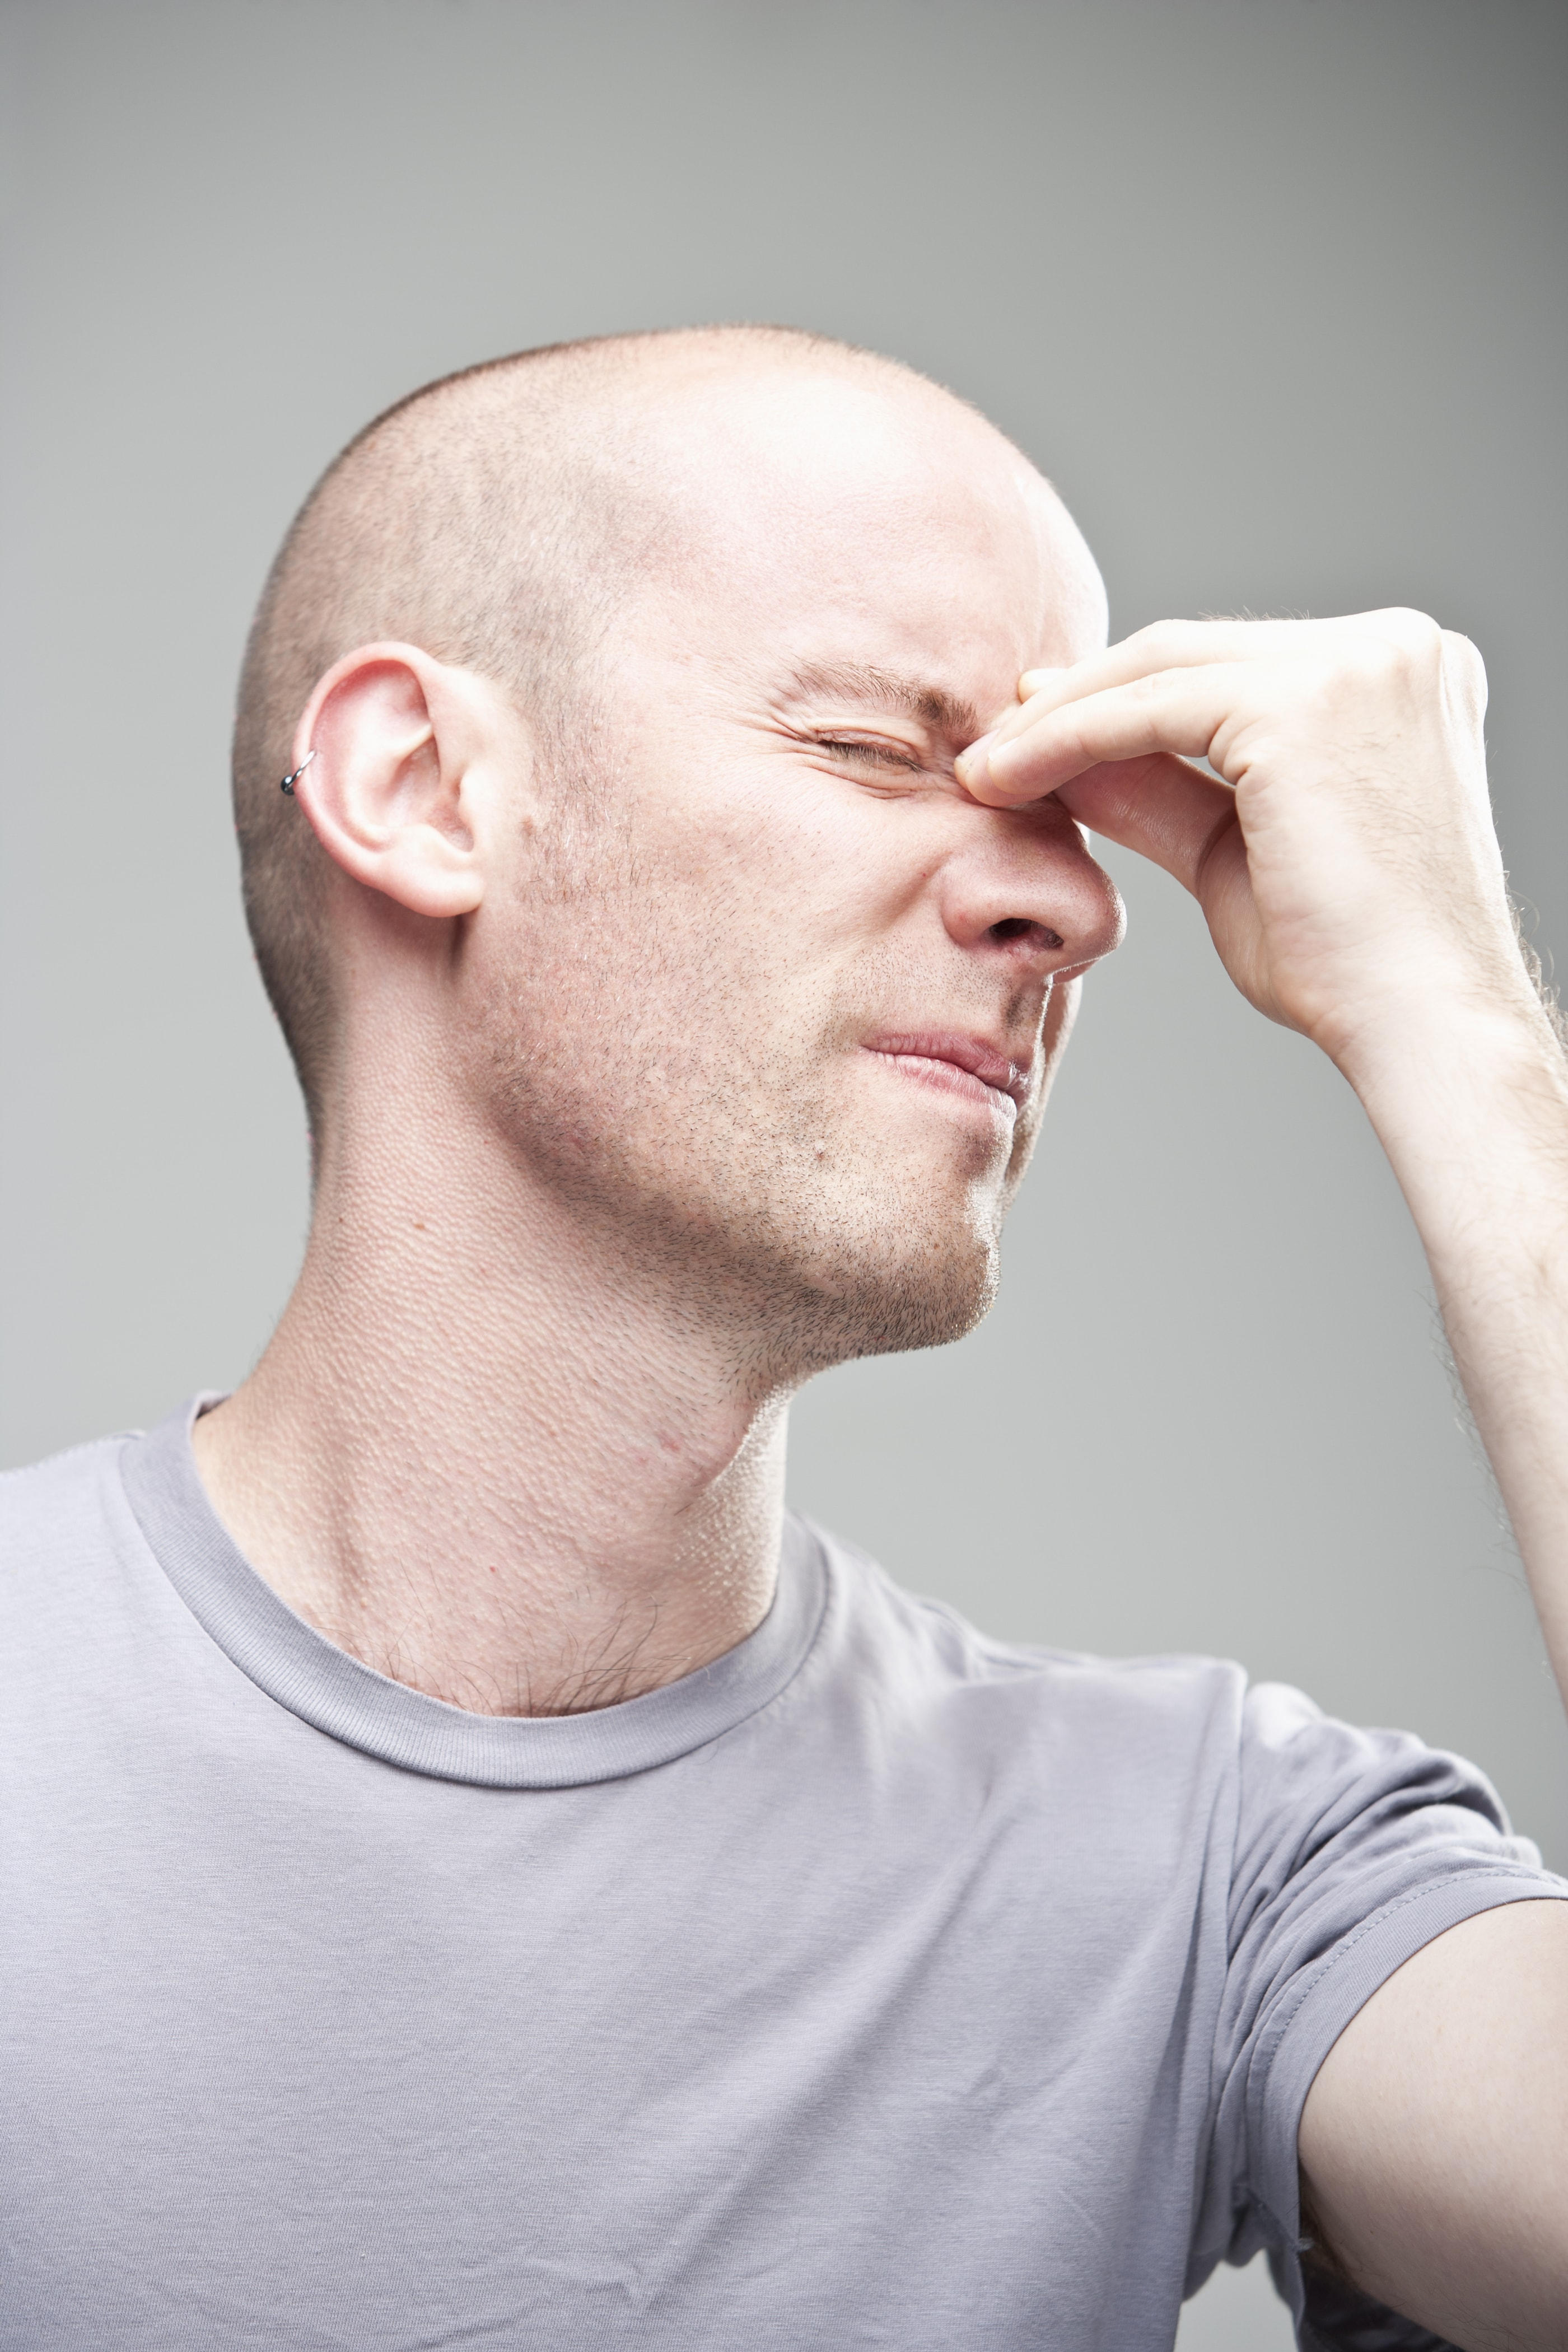 man suffering from deviated septum symptoms